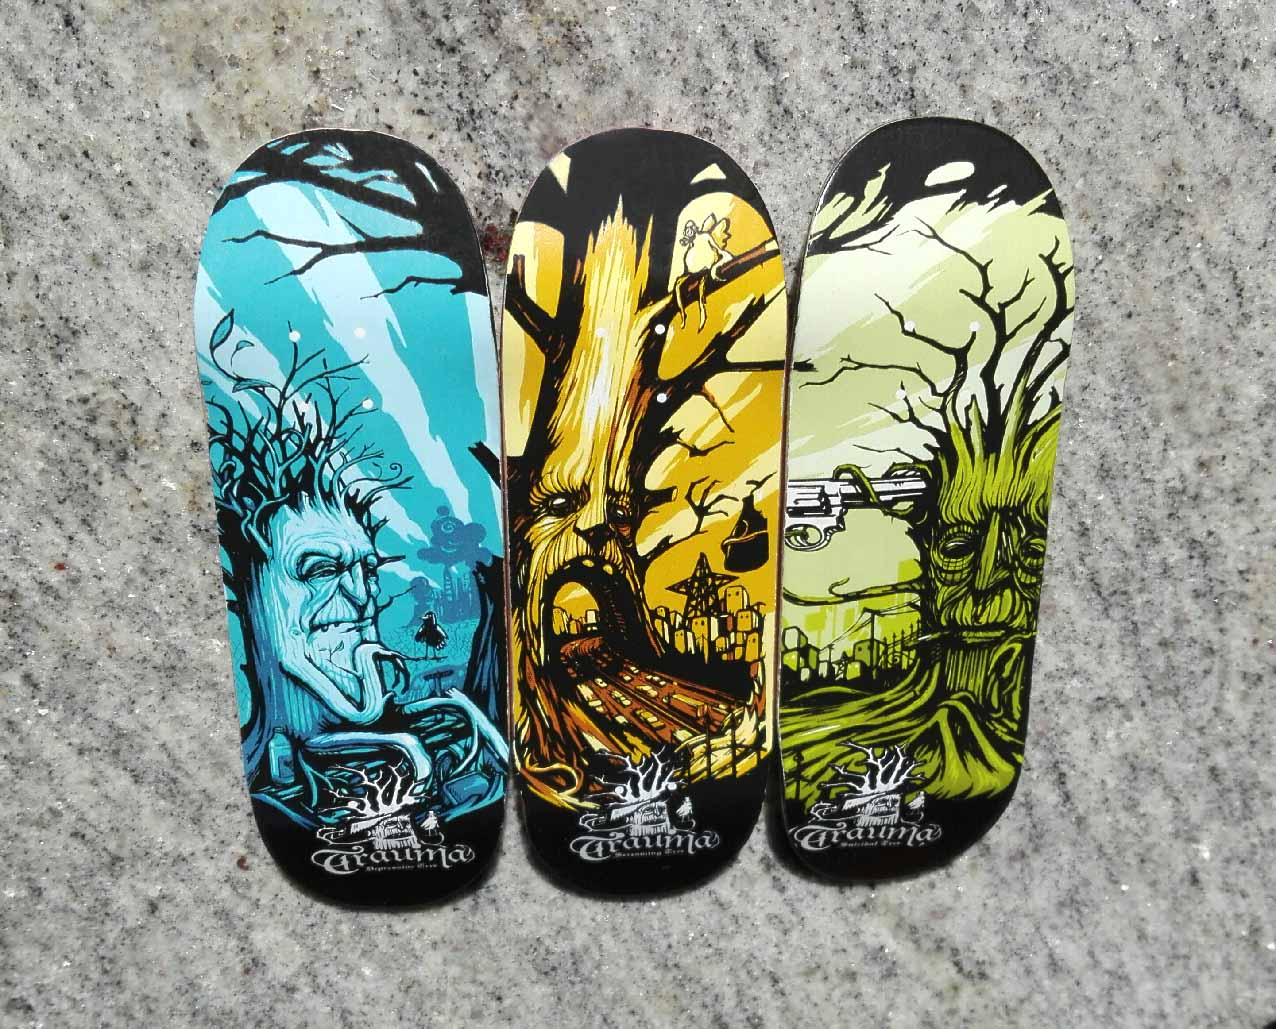 TRIPTYCH TRAUMA TREES BOARD 33MM MEDIUM CONCAVE – 25,90 € ($27,90 USD)